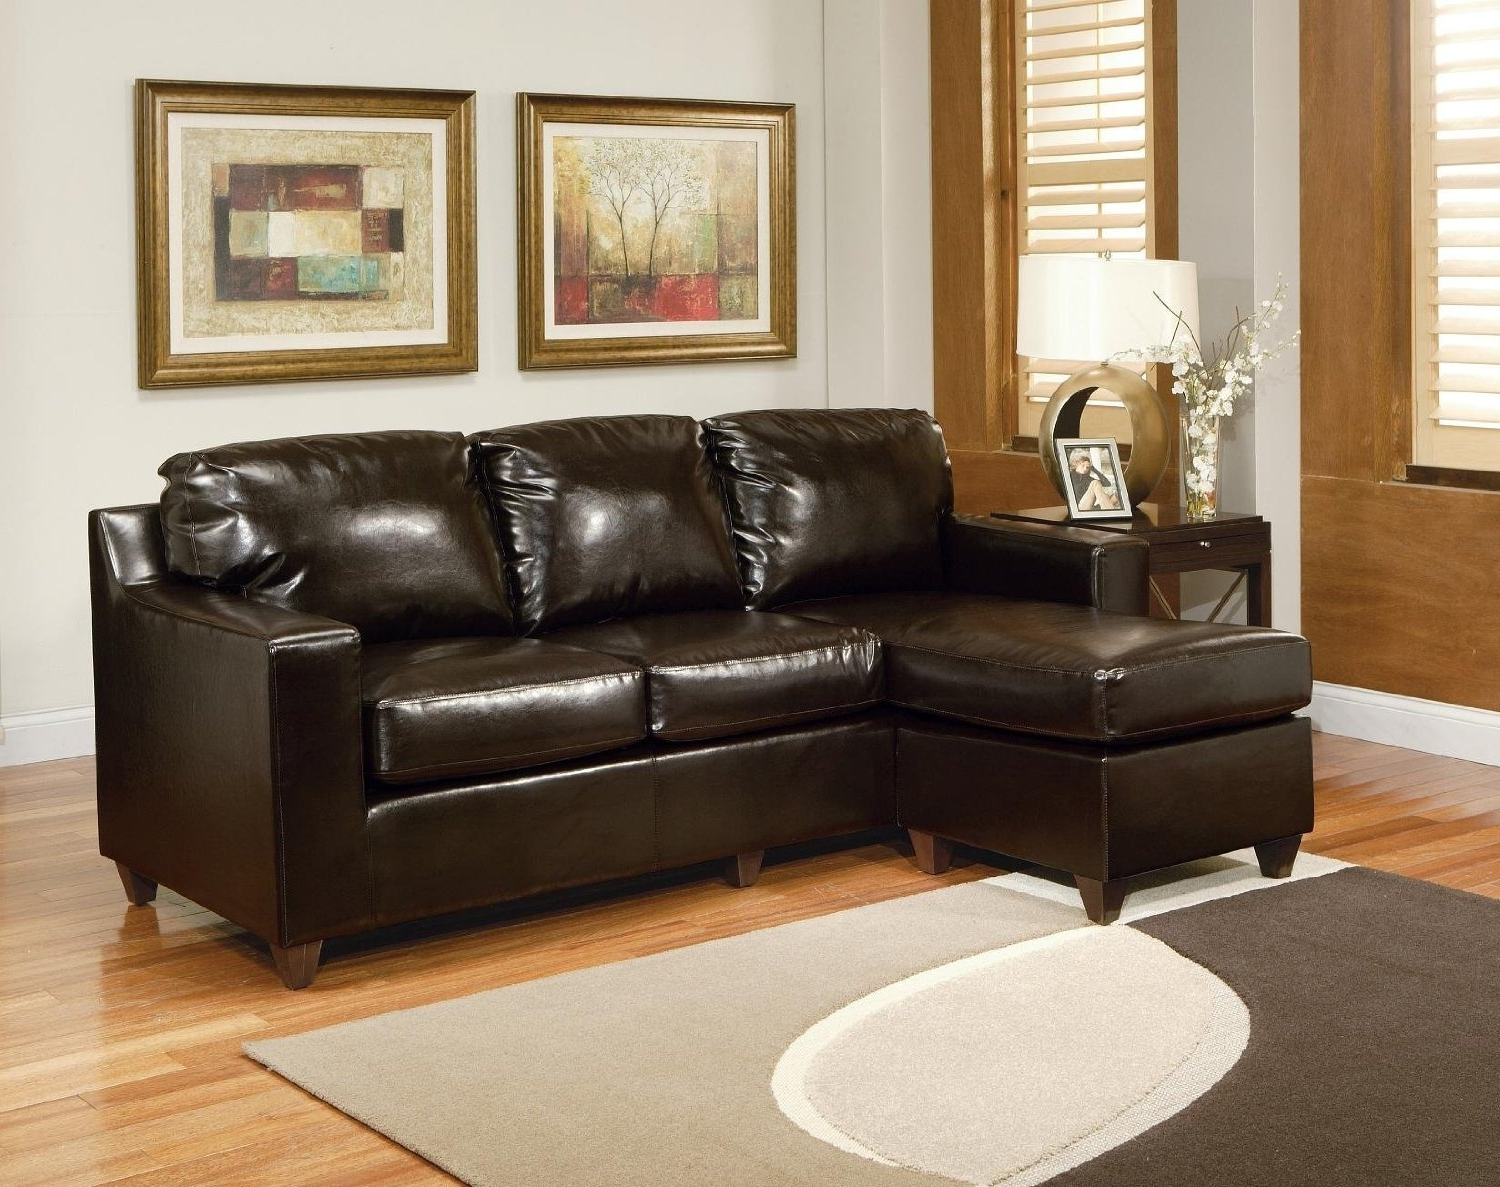 72 Inch Sofa Small Corner Loveseat Best Apartment Sofas Small Throughout Most Up To Date Apartment Sectional Sofas With Chaise (View 1 of 15)